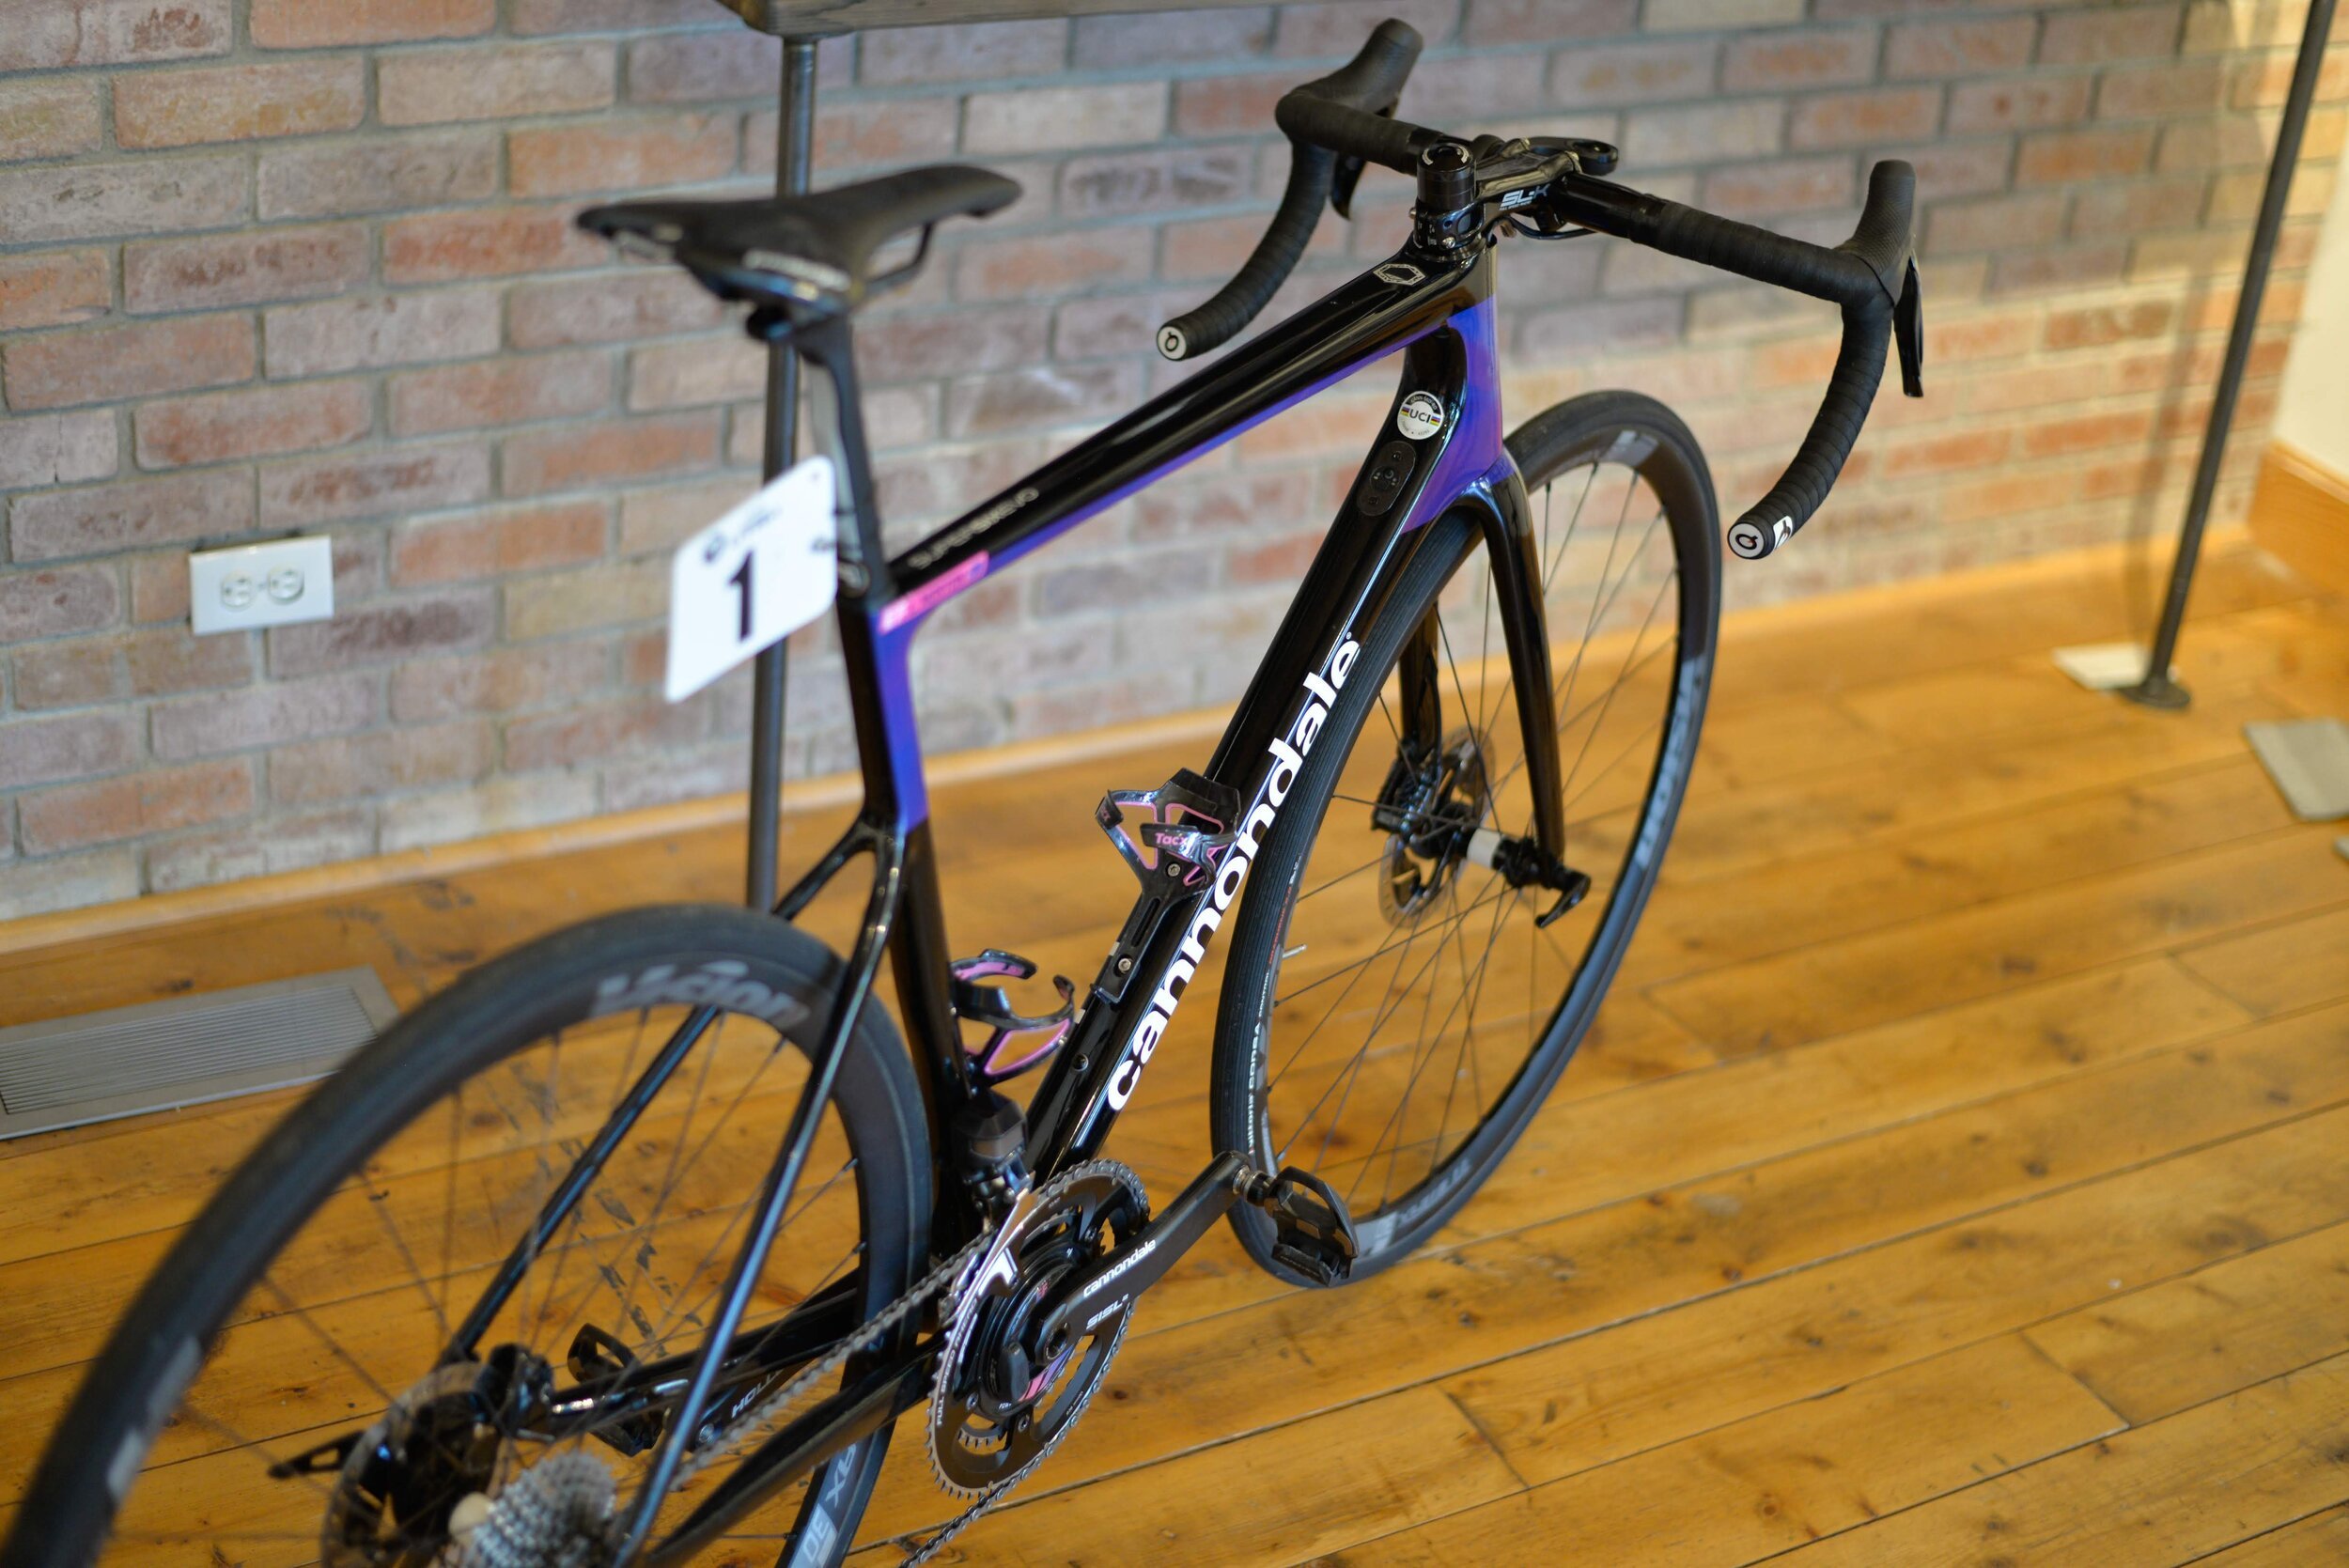 New Bike PurchaseBike Fit - $449 (single bike)Get fit before you buy!Looking to buy a new bike? This service establishes your suitable position on a fully adjustable